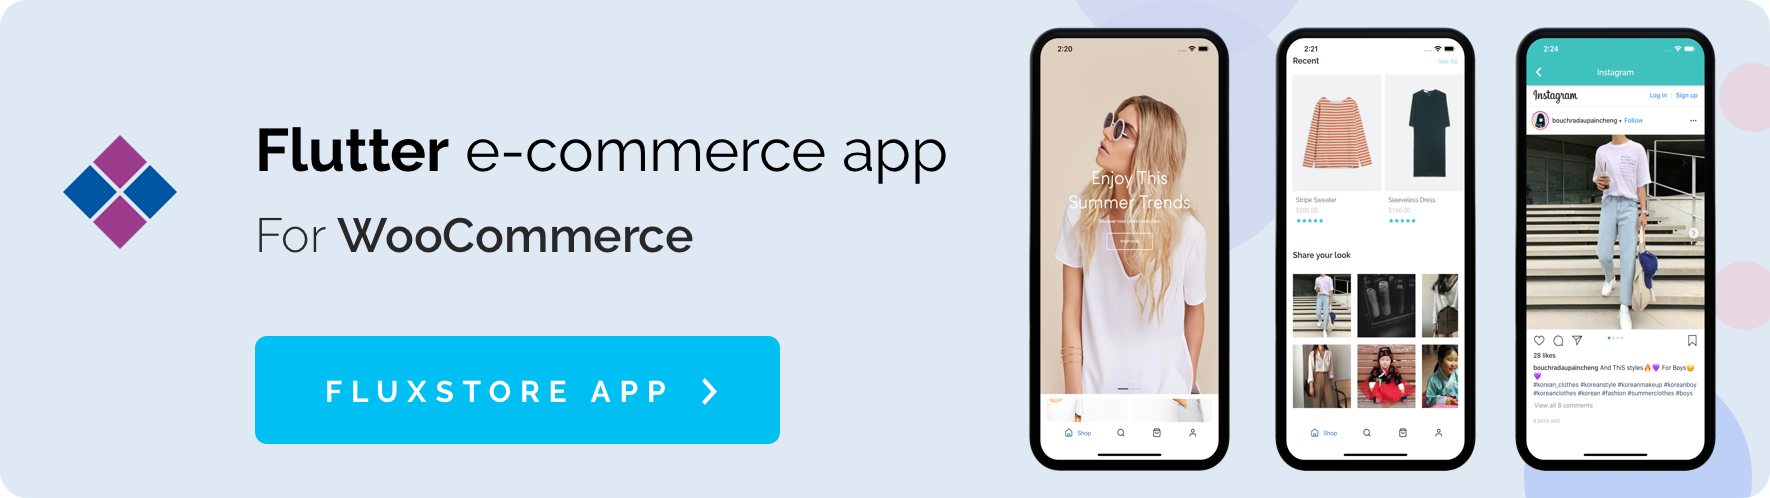 Fluxstore Multi Vendor - Flutter E-commerce Full App - 28